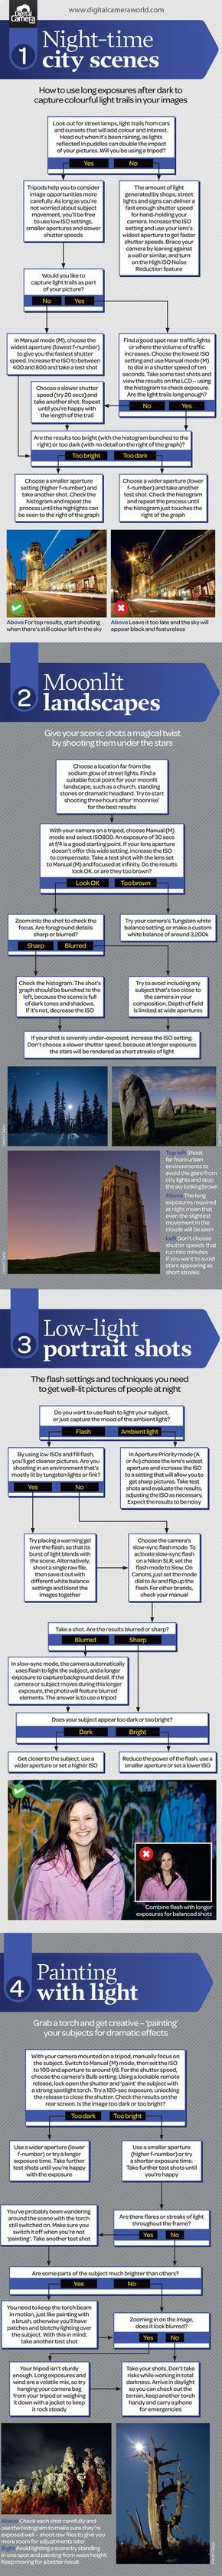 The Rules of Photography (and how to break them) - Free night photography cheat sheet: how to shoot popular low-light scenes | Digital Camera World